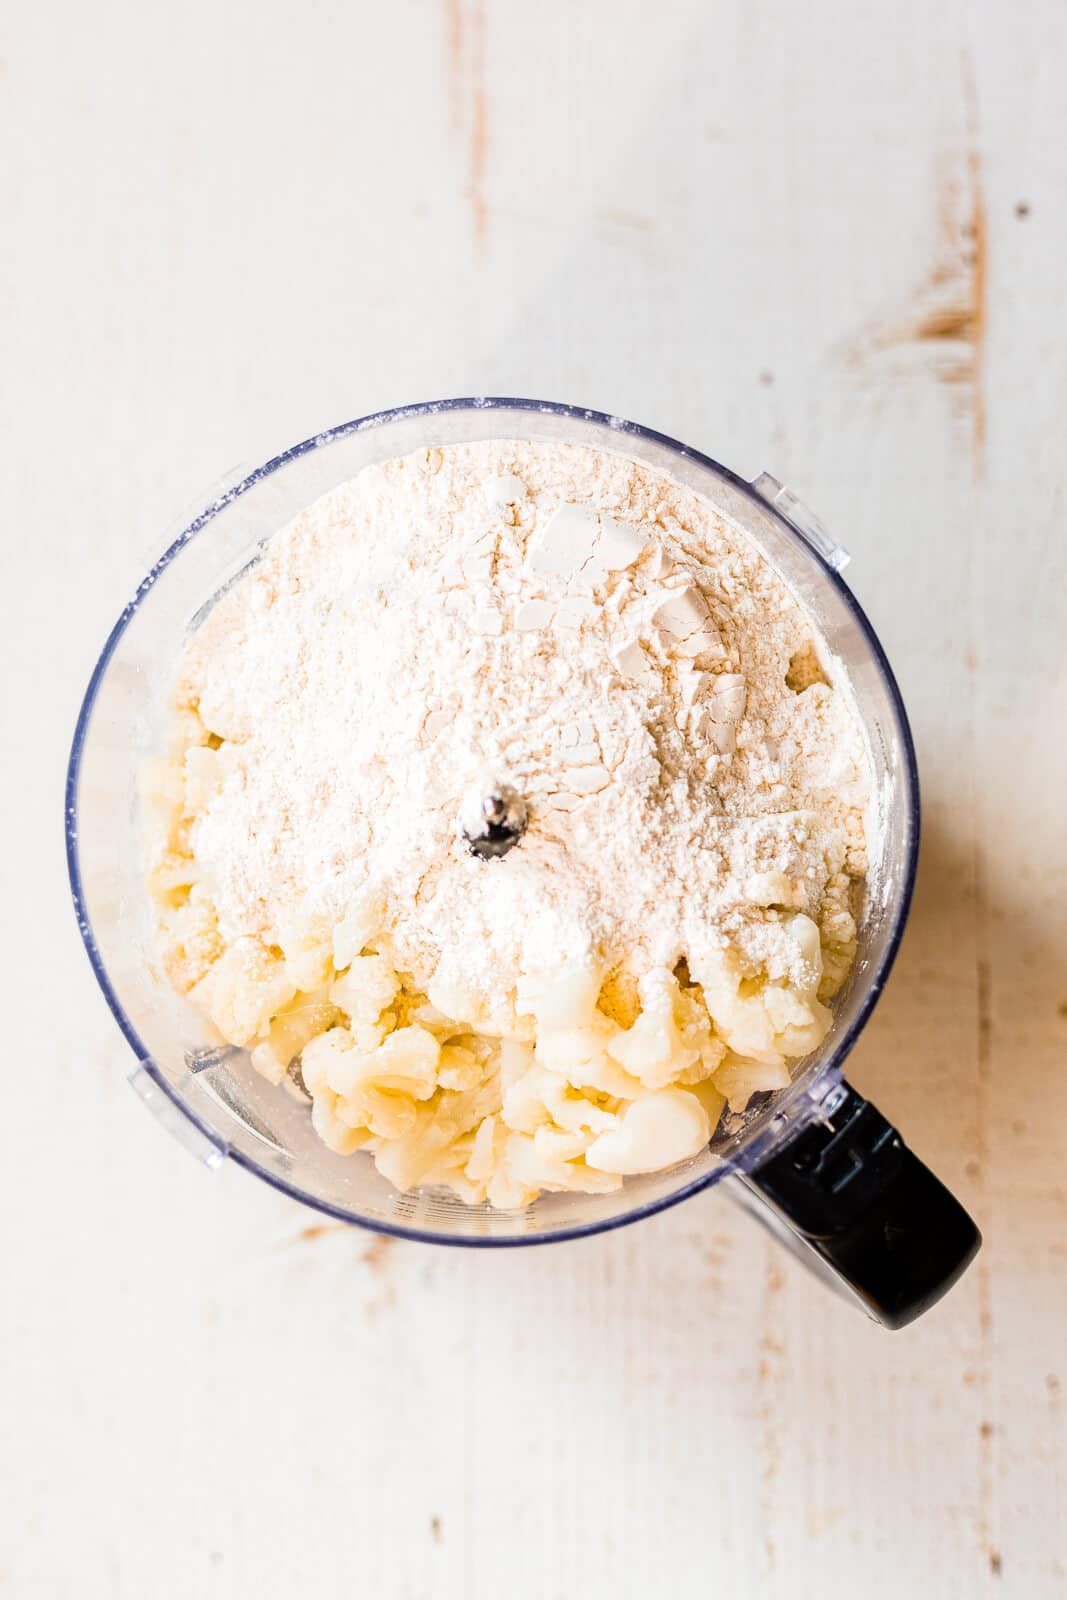 cauliflower and cassava flour in the bowl of a food processor